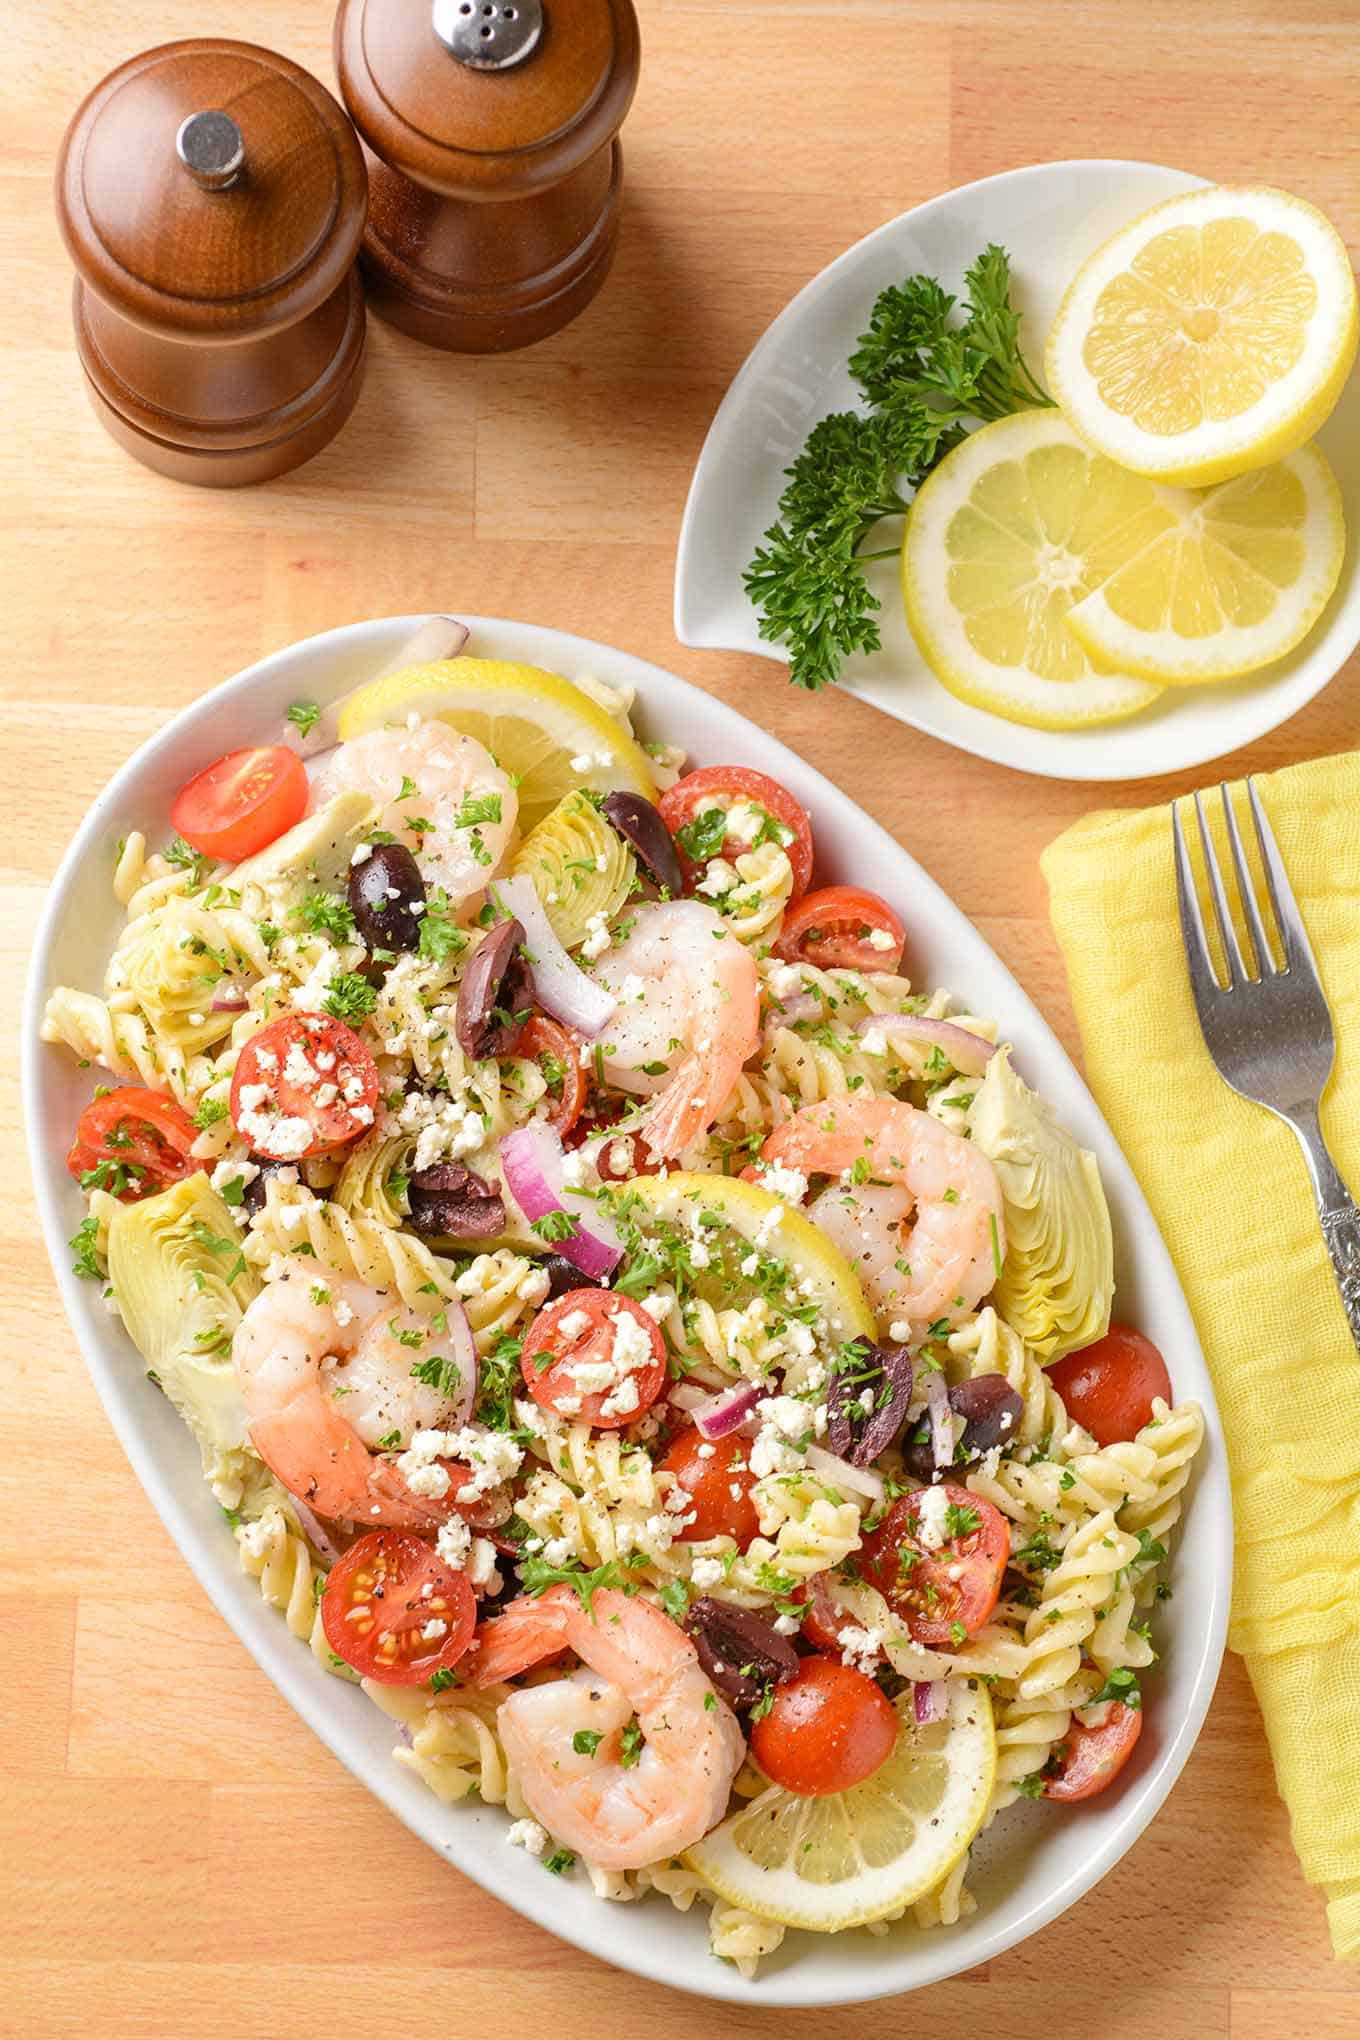 A plated serving of shrimp and pasta salad topped with feta cheese, extra lemon on the side.